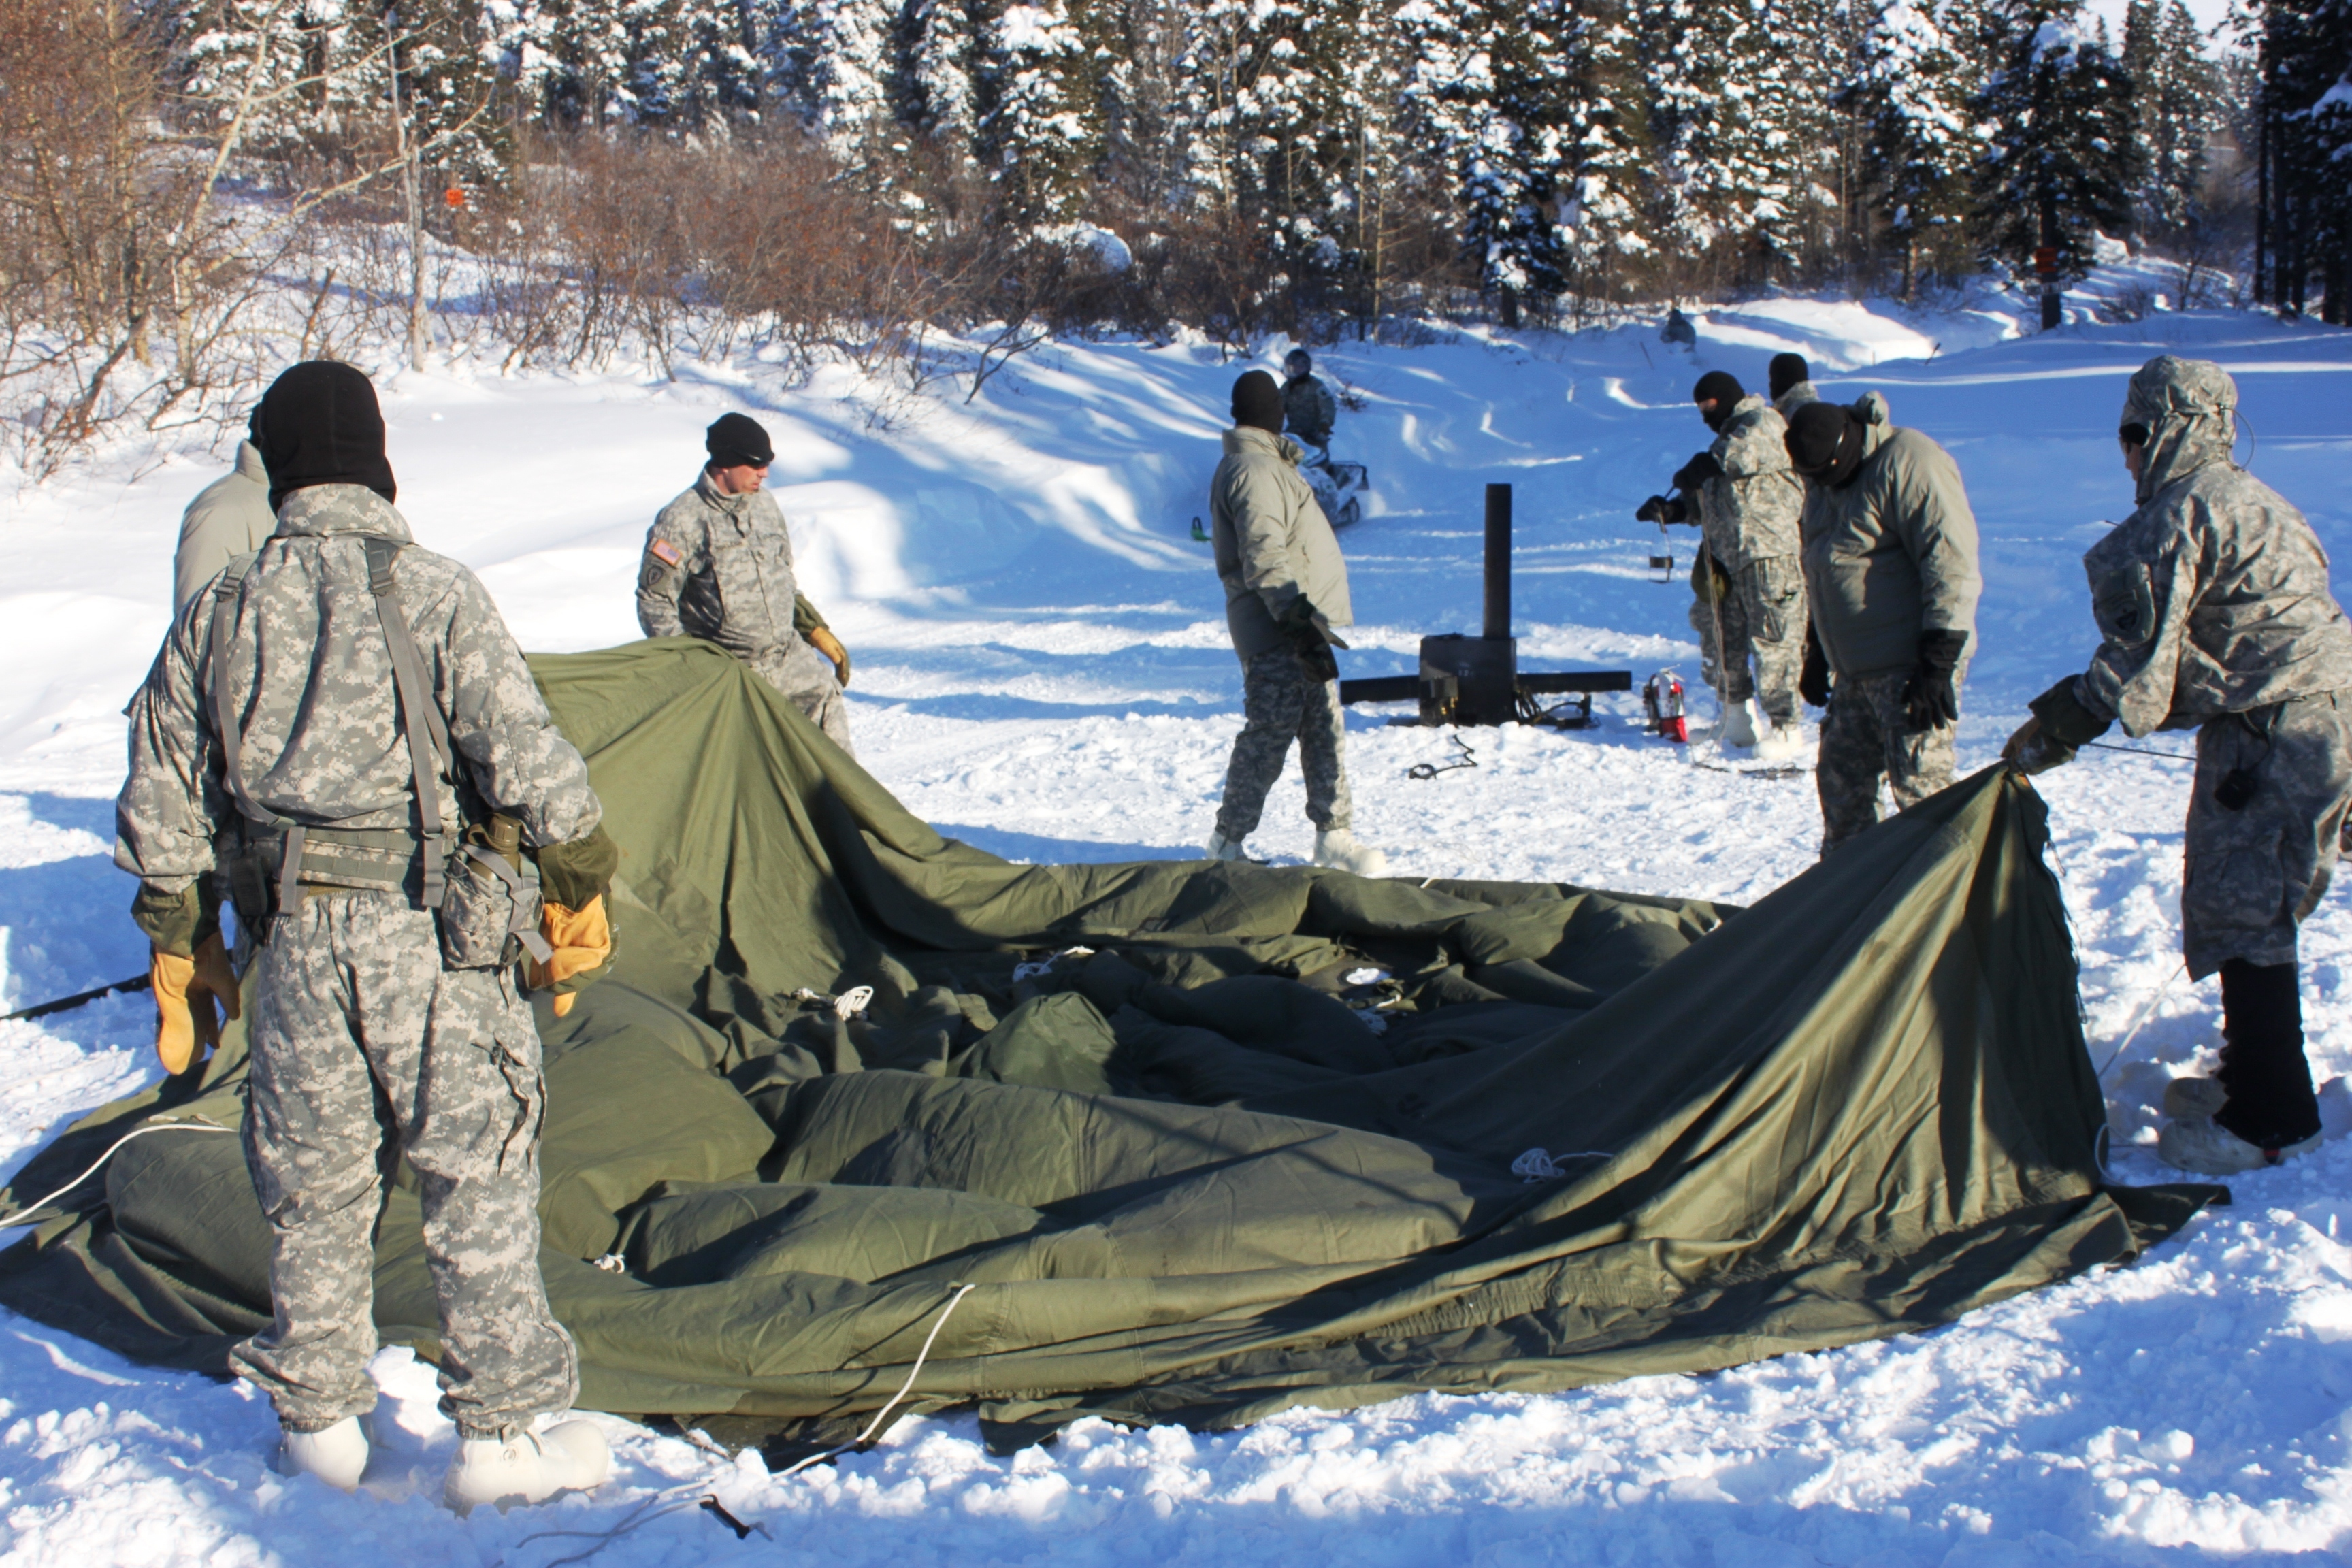 FileU.S. Soldiers assigned to the 4th Brigade Combat Team (Airborne) 25th Infantry Division work to assemble an Arctic 10-man tent as part of the Cold ... & File:U.S. Soldiers assigned to the 4th Brigade Combat Team ...